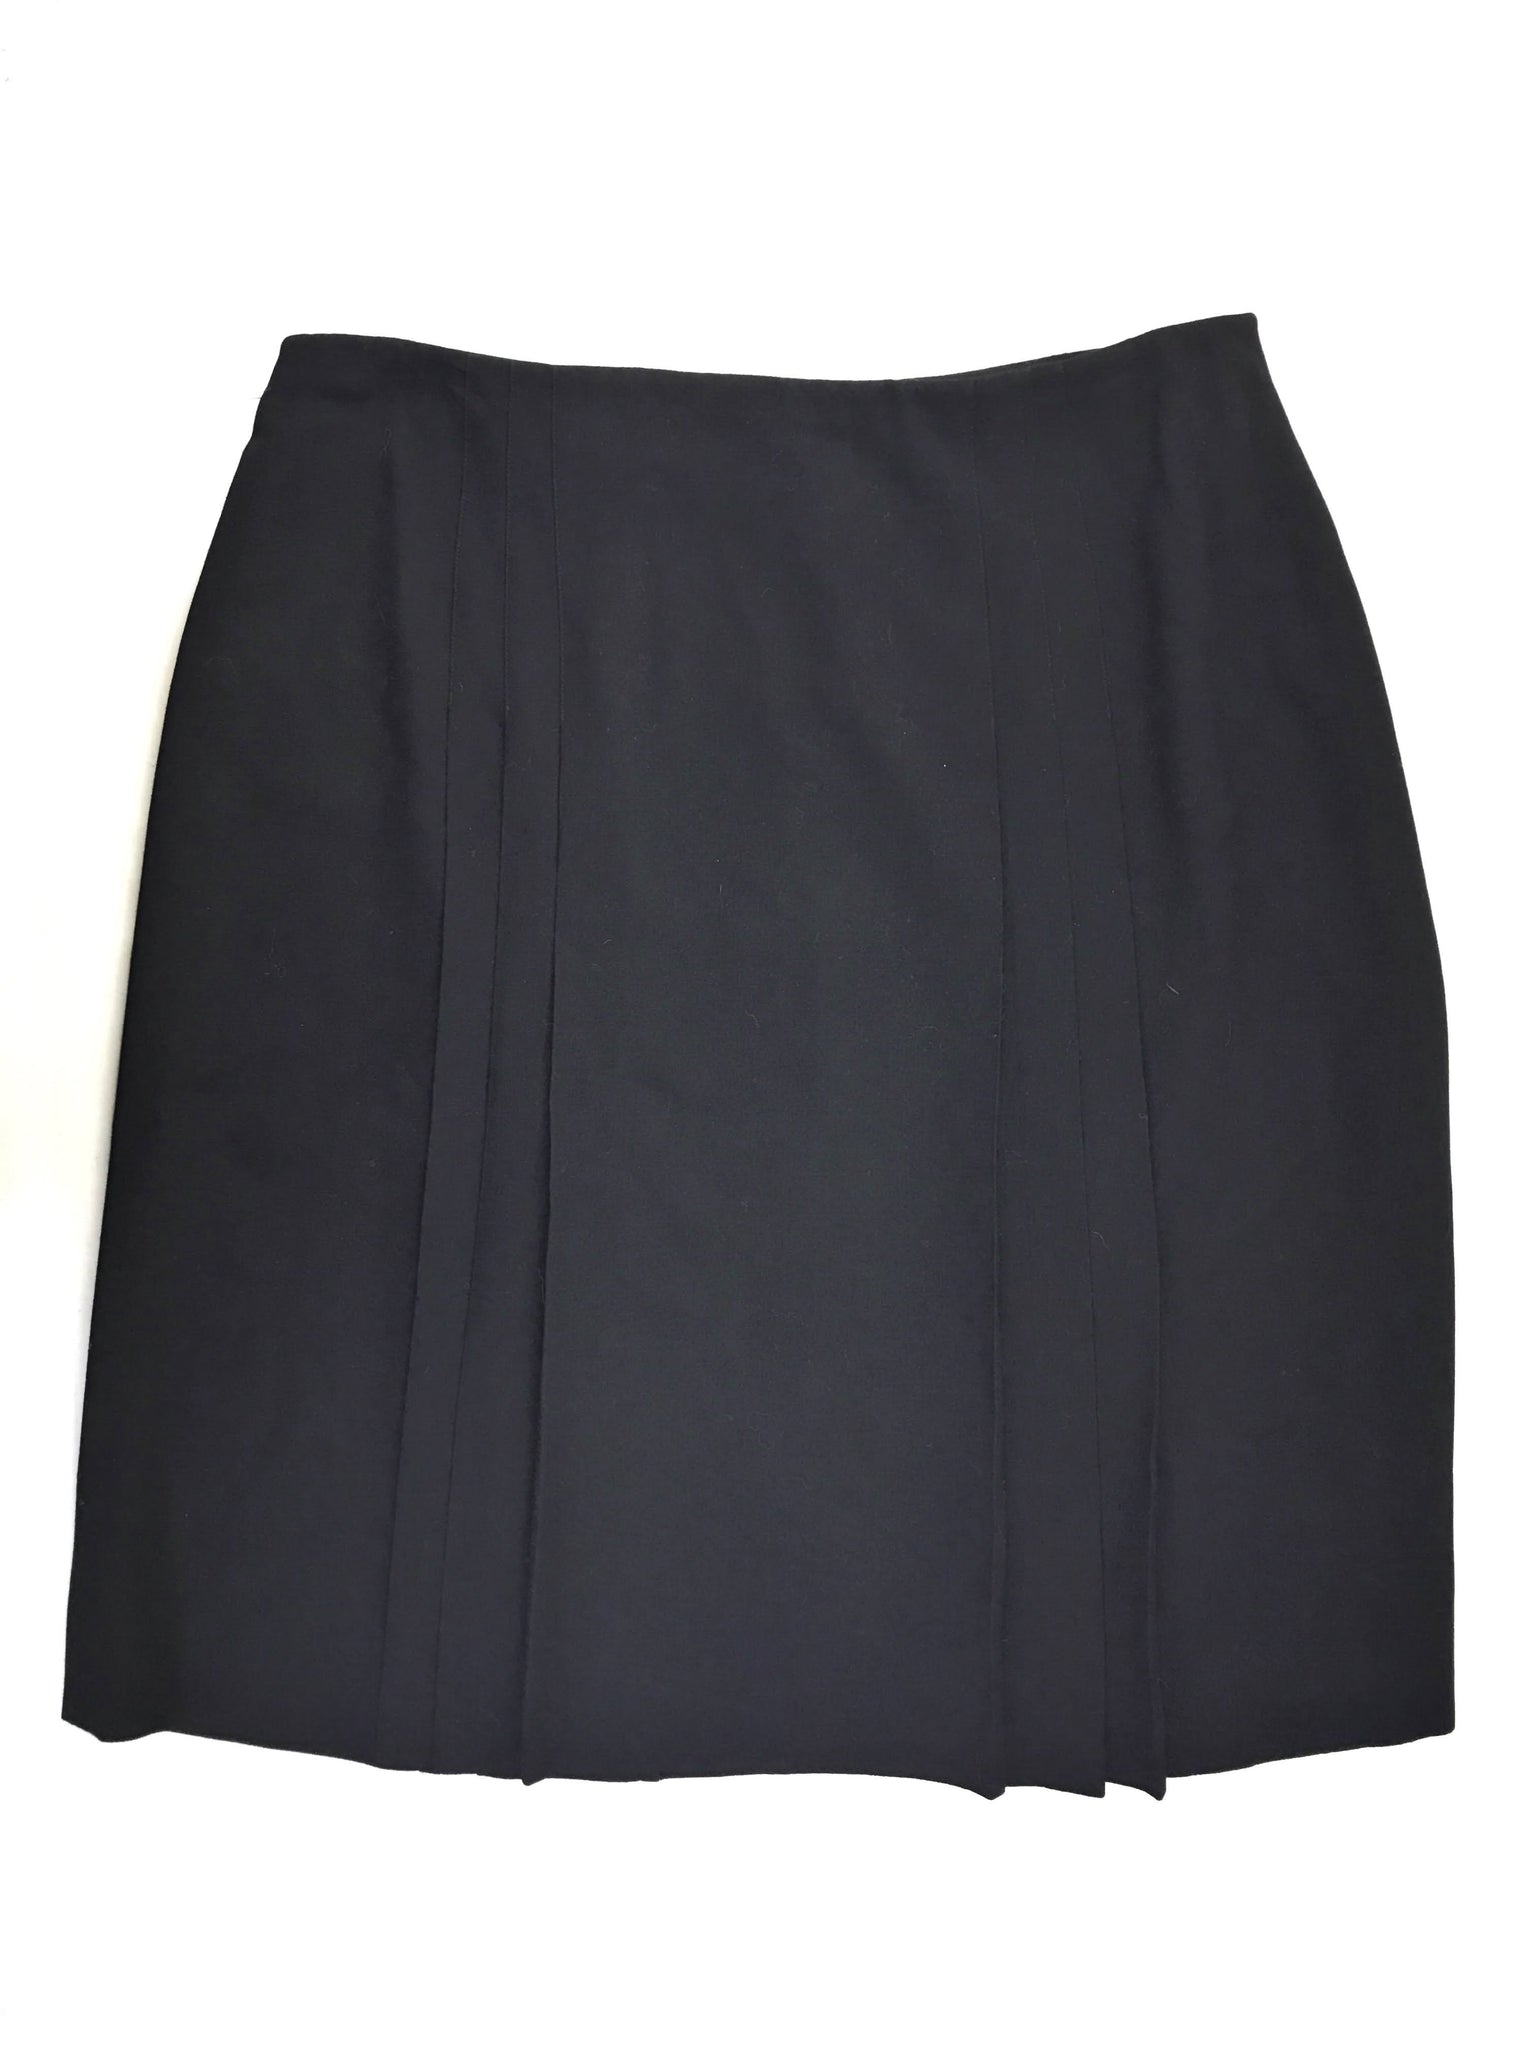 Chanel Black 100% Wool Pleated Skirt